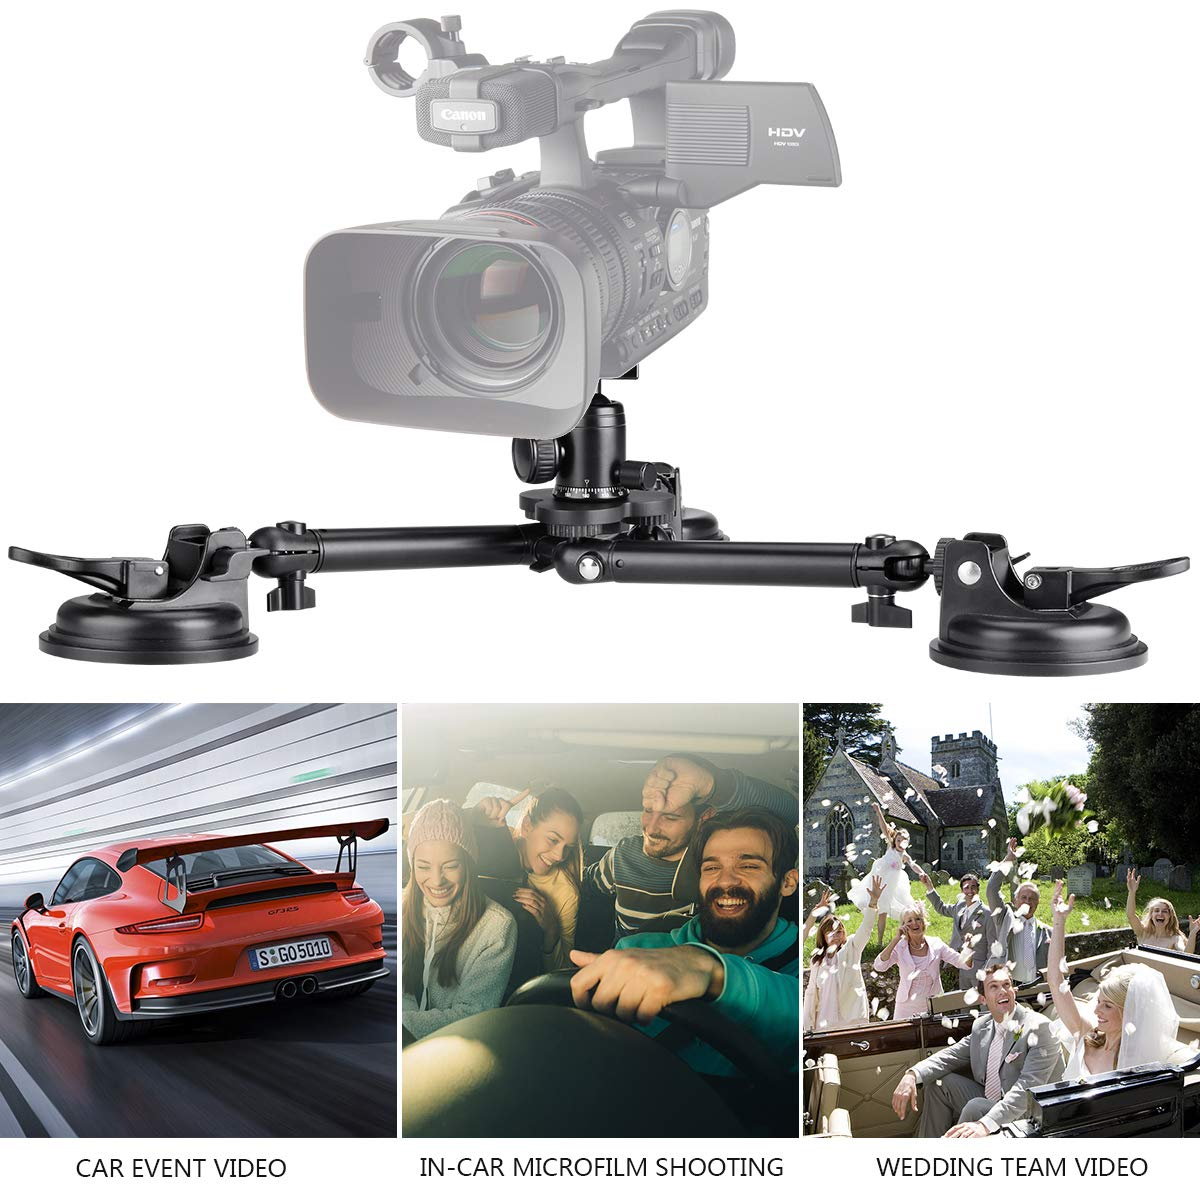 Professional Heavy Duty DSLR Camera Suction Cup Car Mount Camcorder Vehicle Holder w/ Quick Release 360°Panorama Ball Head Compatible with Nikon Canon Sony Mirrorless for Hi-Speed Motion Photography by fantaseal (Image #5)